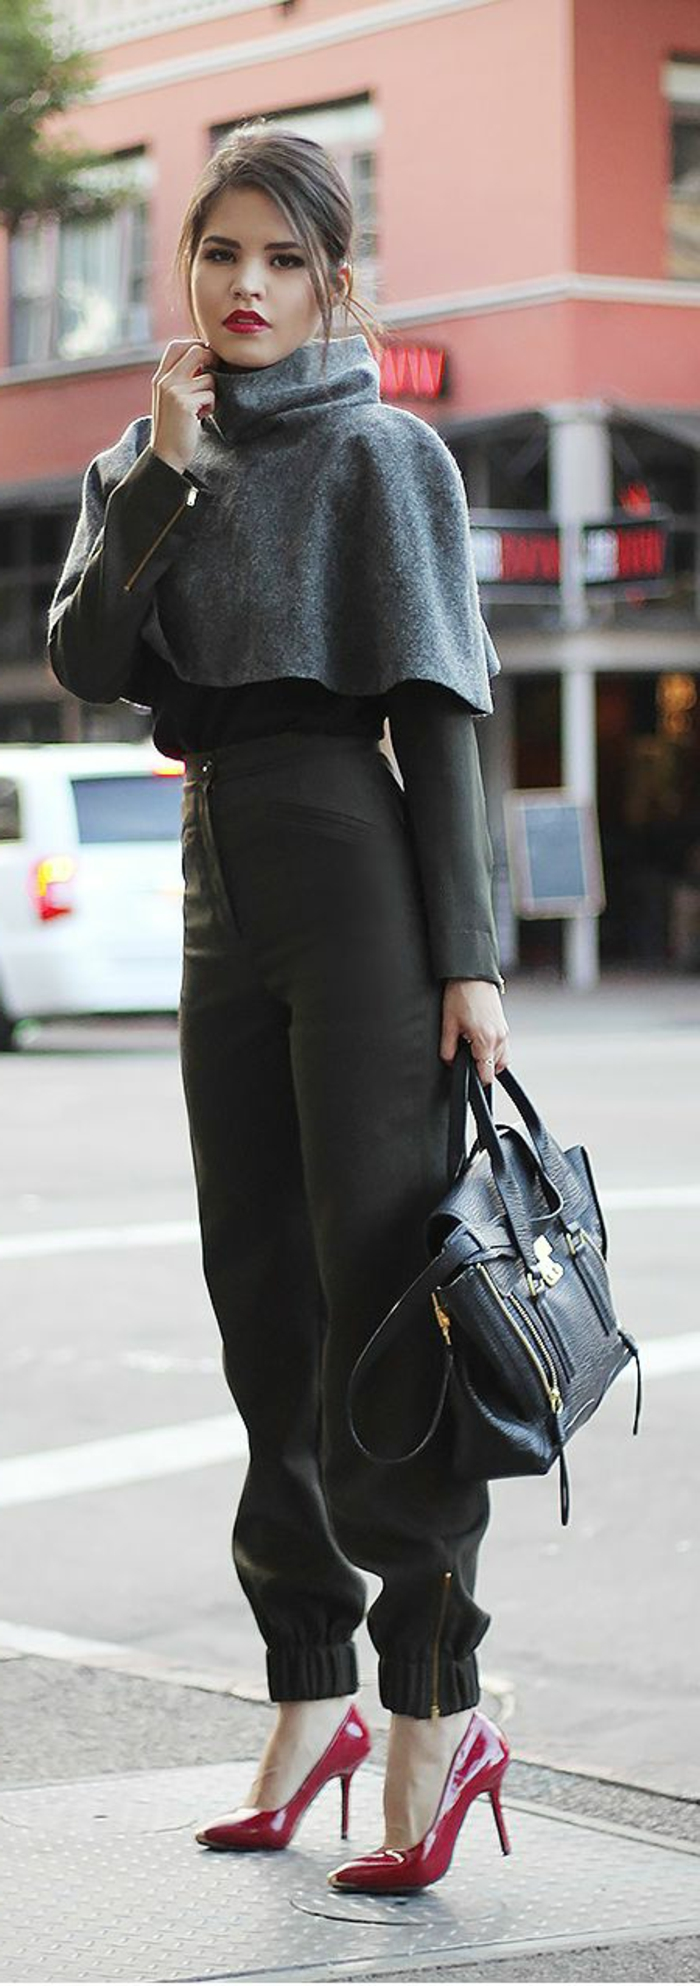 interview outfits for women, brunette woman with tied back hair and red lipstick, grey cropped turtleneck poncho over black top, black trousers and bag, dark pink high heels